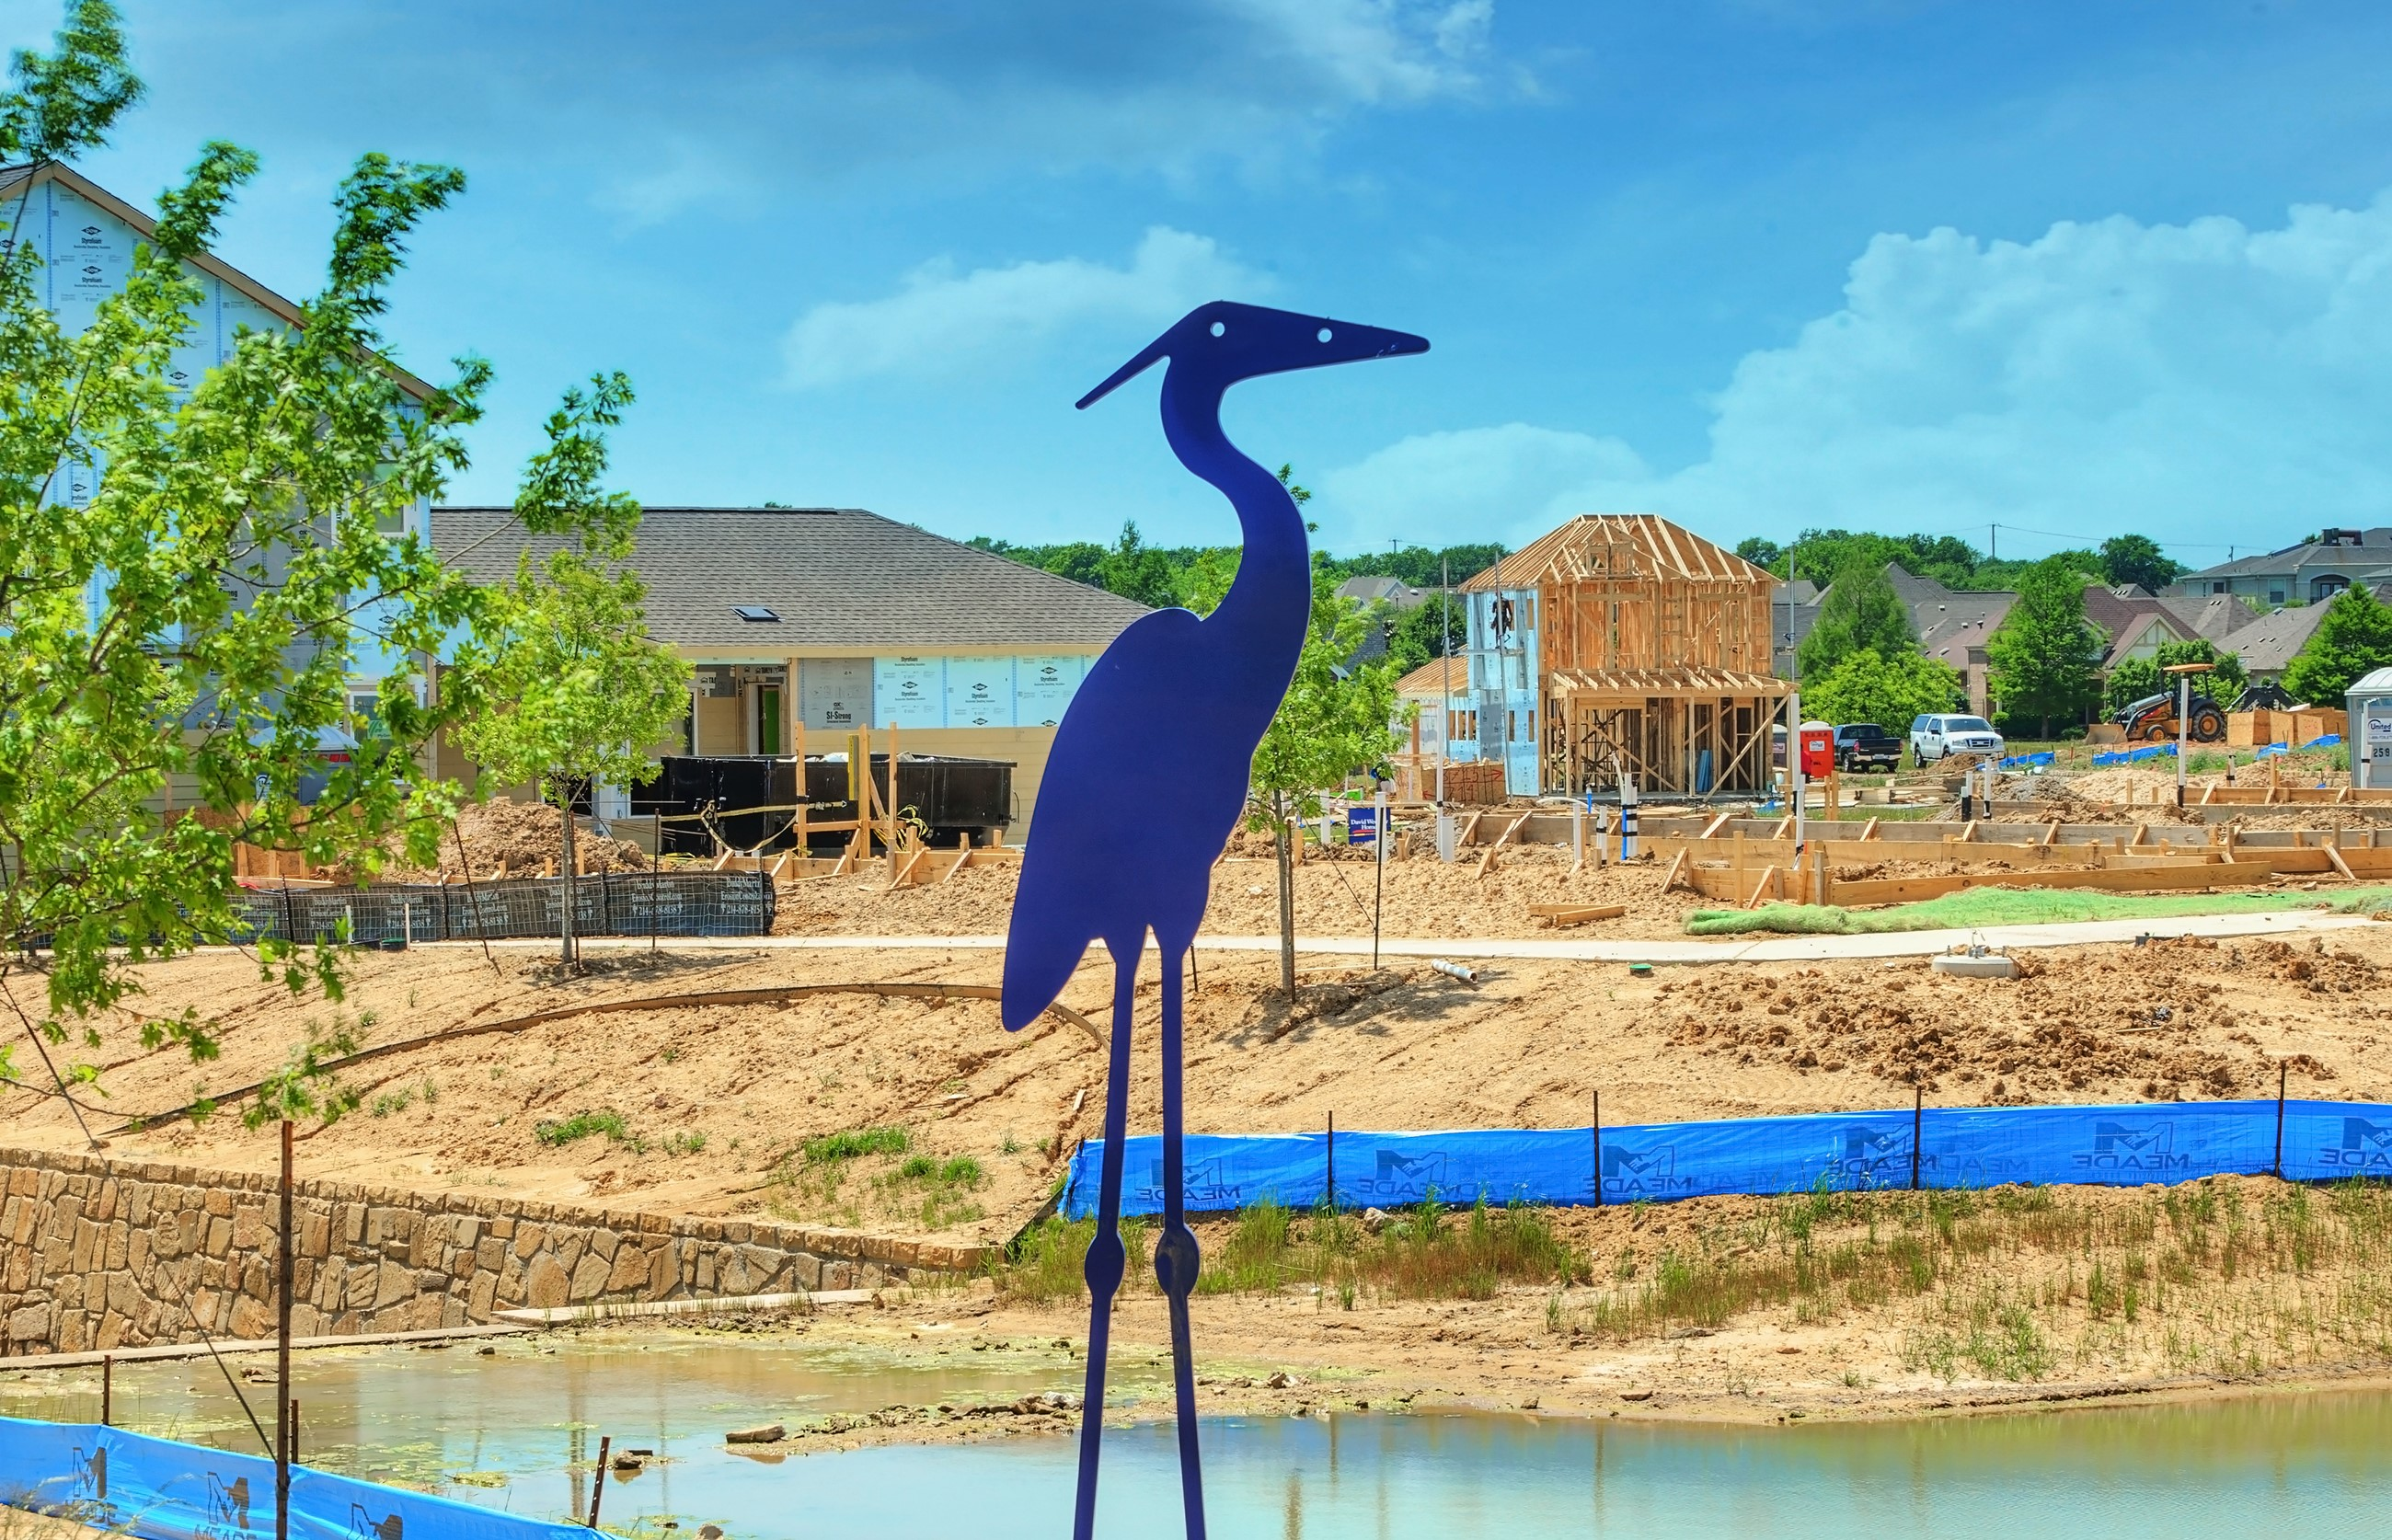 ConstructionHometownCrane Sculpture.jpg